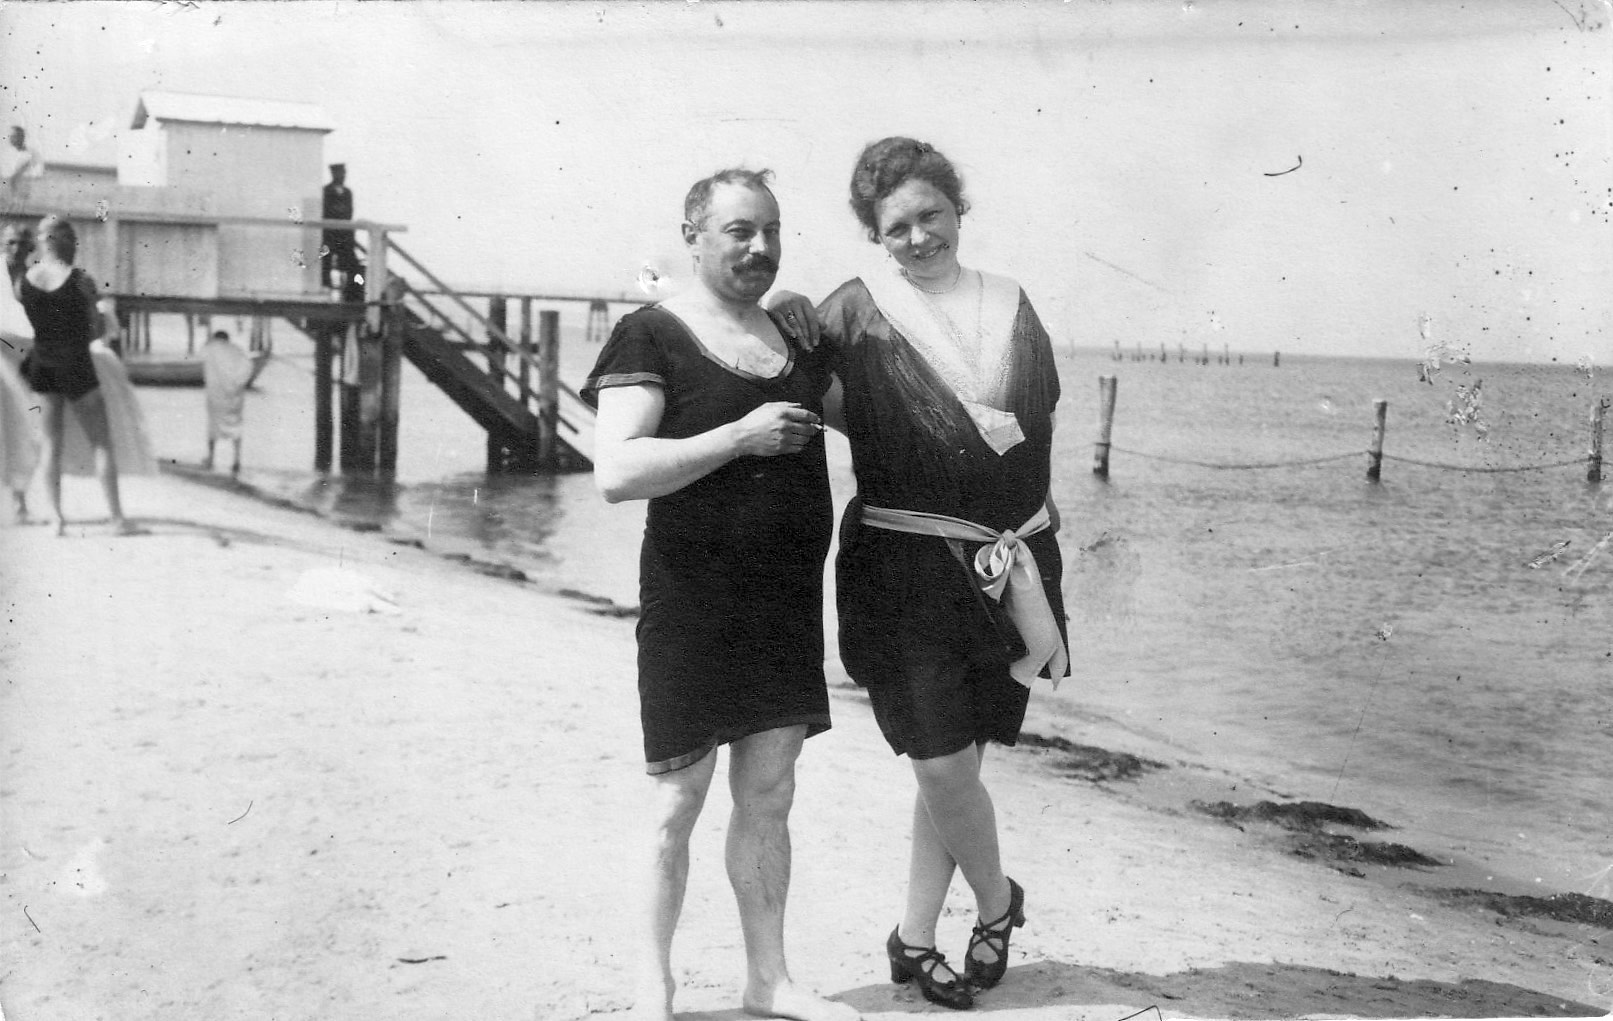 Mama and Papa (Willy and Gertrüd Stern) at the beach - probably at the North Sea. My grandmother is stylin'. Look at those shoes! This is the only photo I have from 1919.